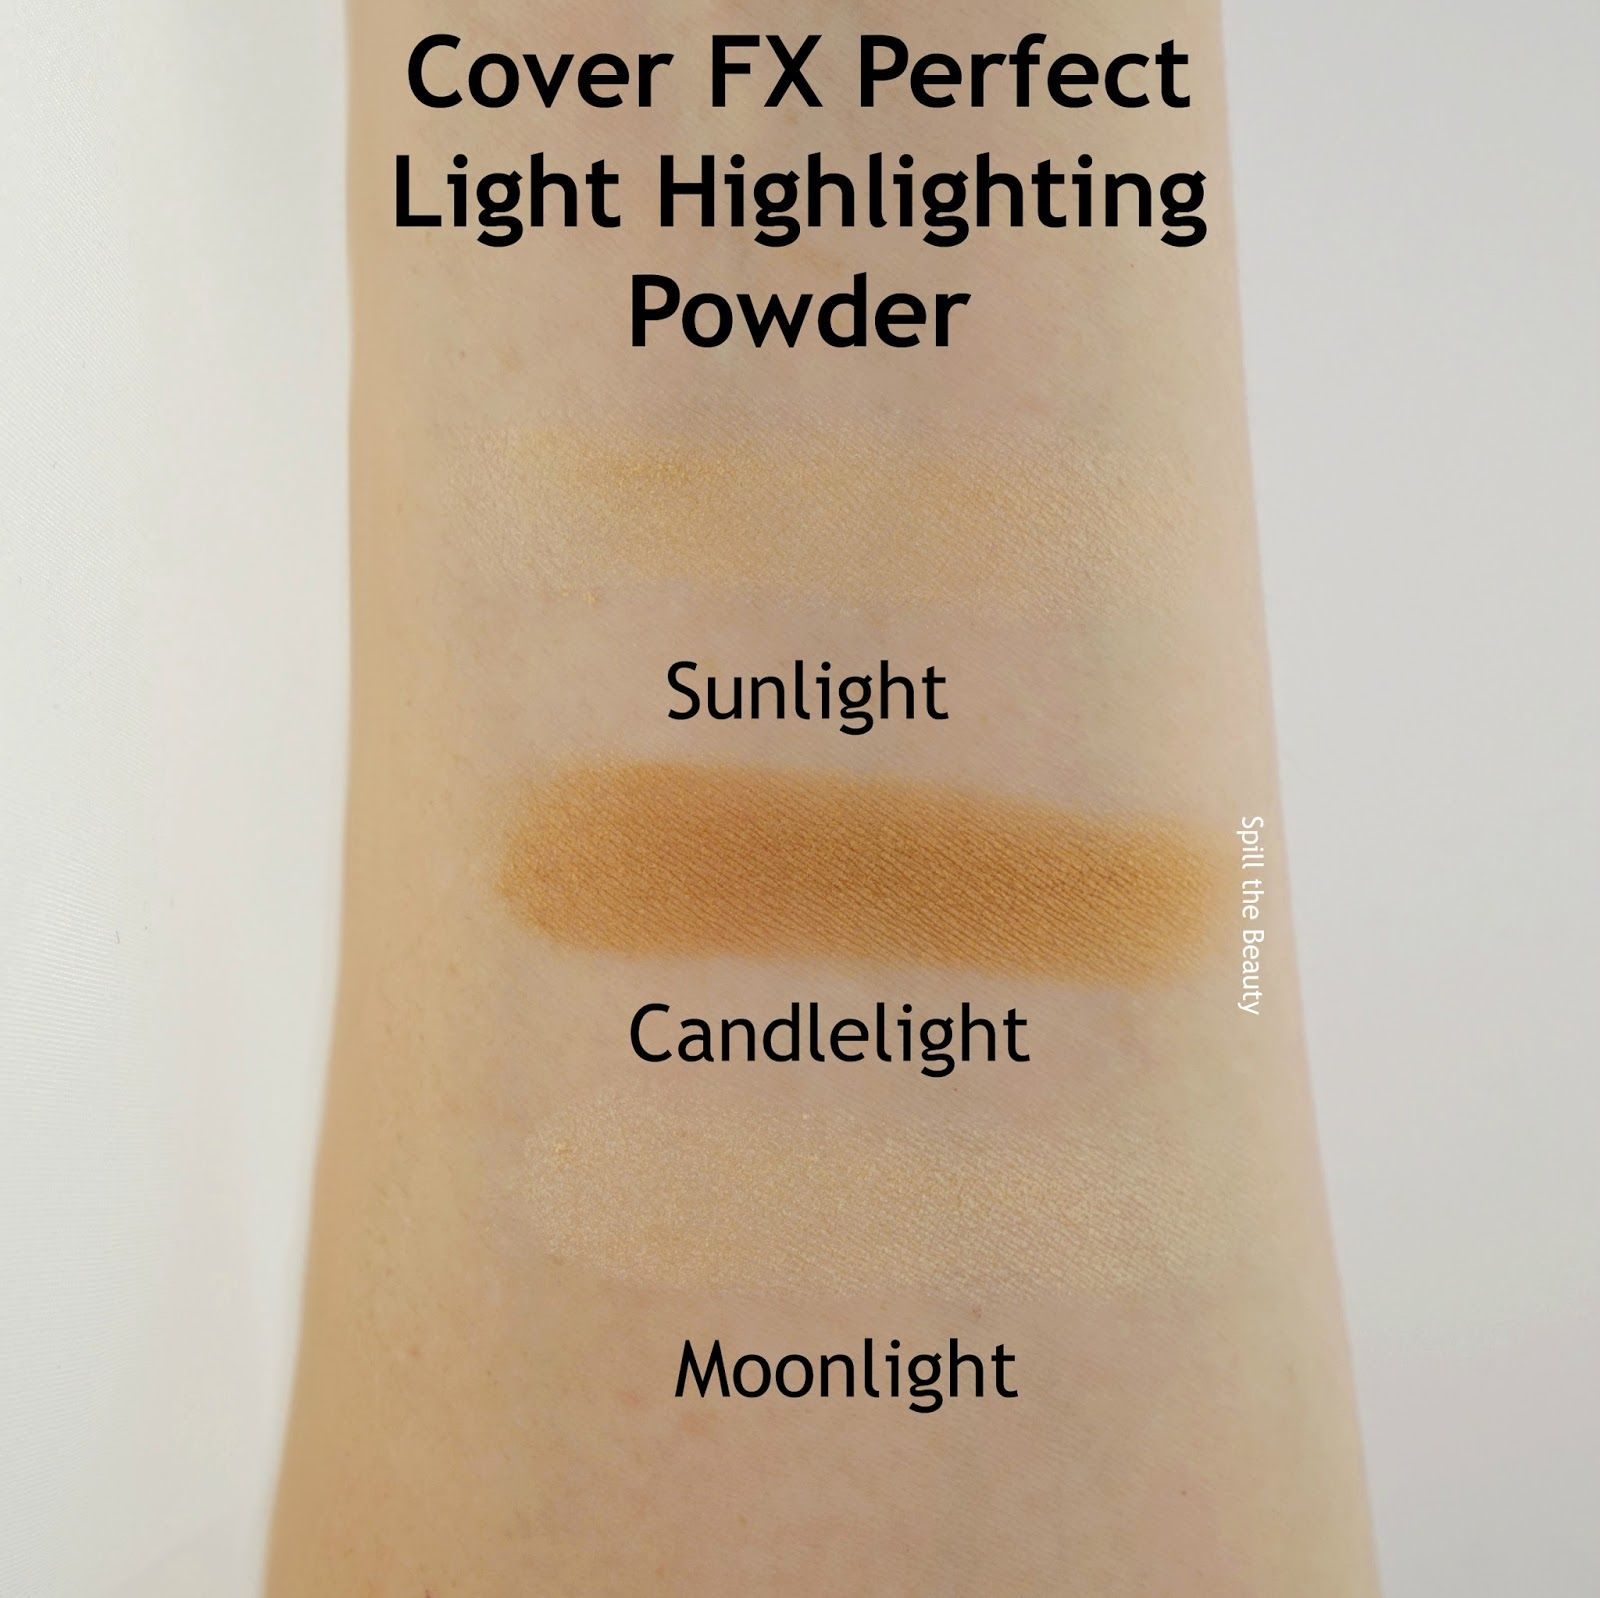 Cover Fx Perfect Light Highlighting Powder Sunlight Candlelight Moonlight Review And Swatches Cover Fx Perfect Lights Candlelight